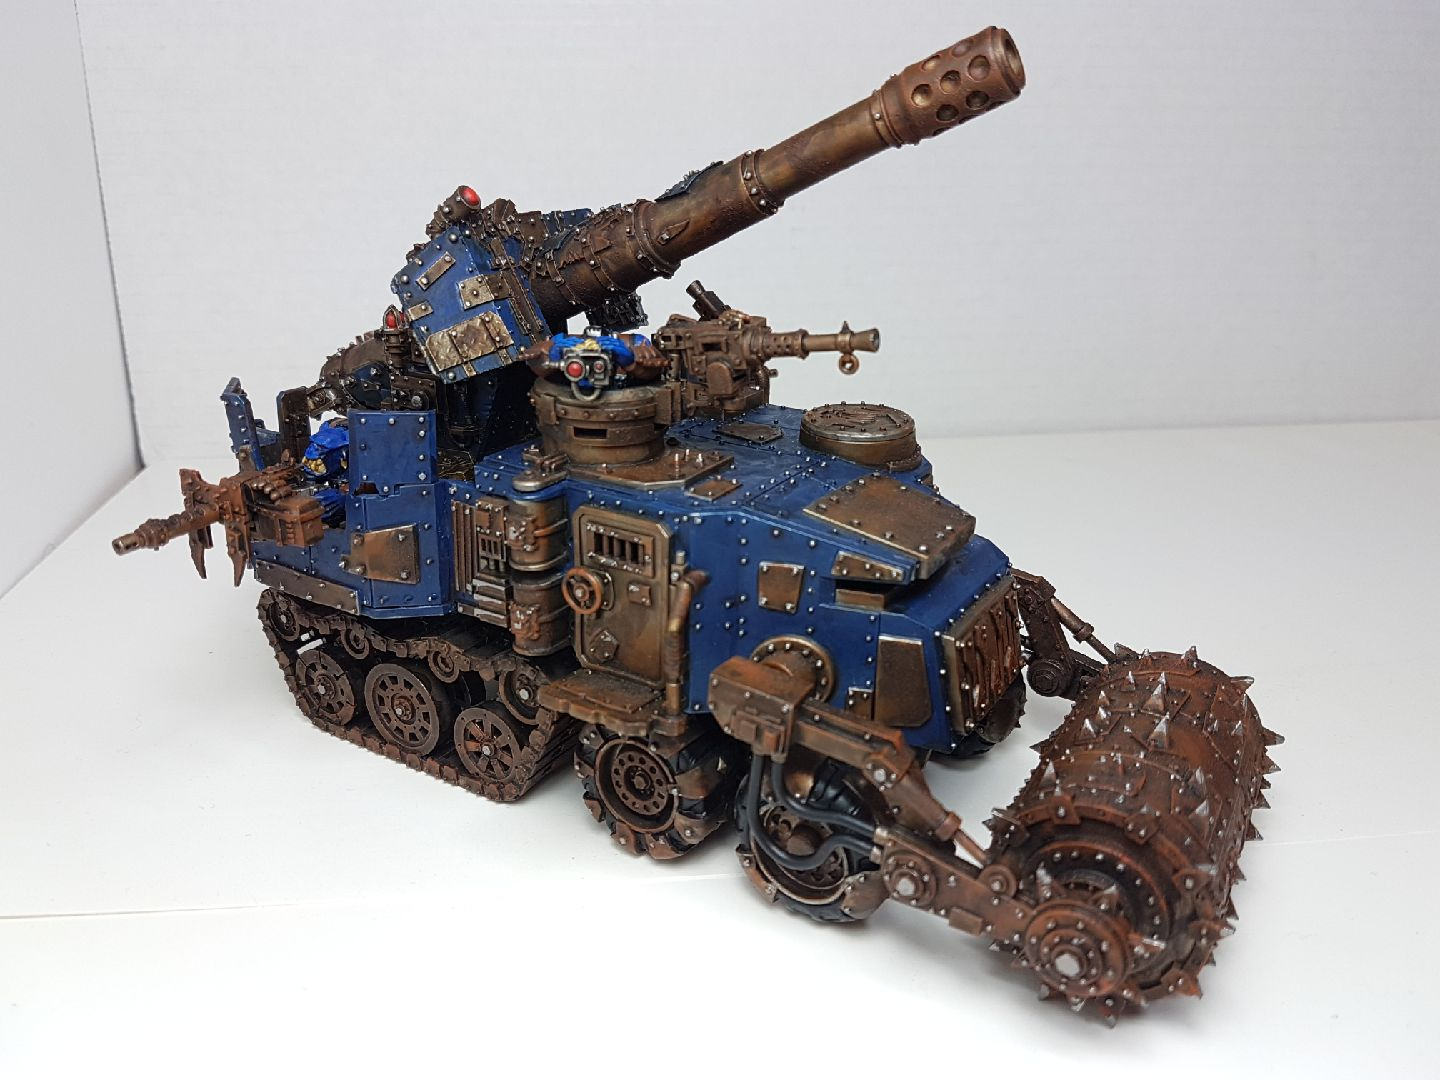 Battlewagon with Supa-Kannon